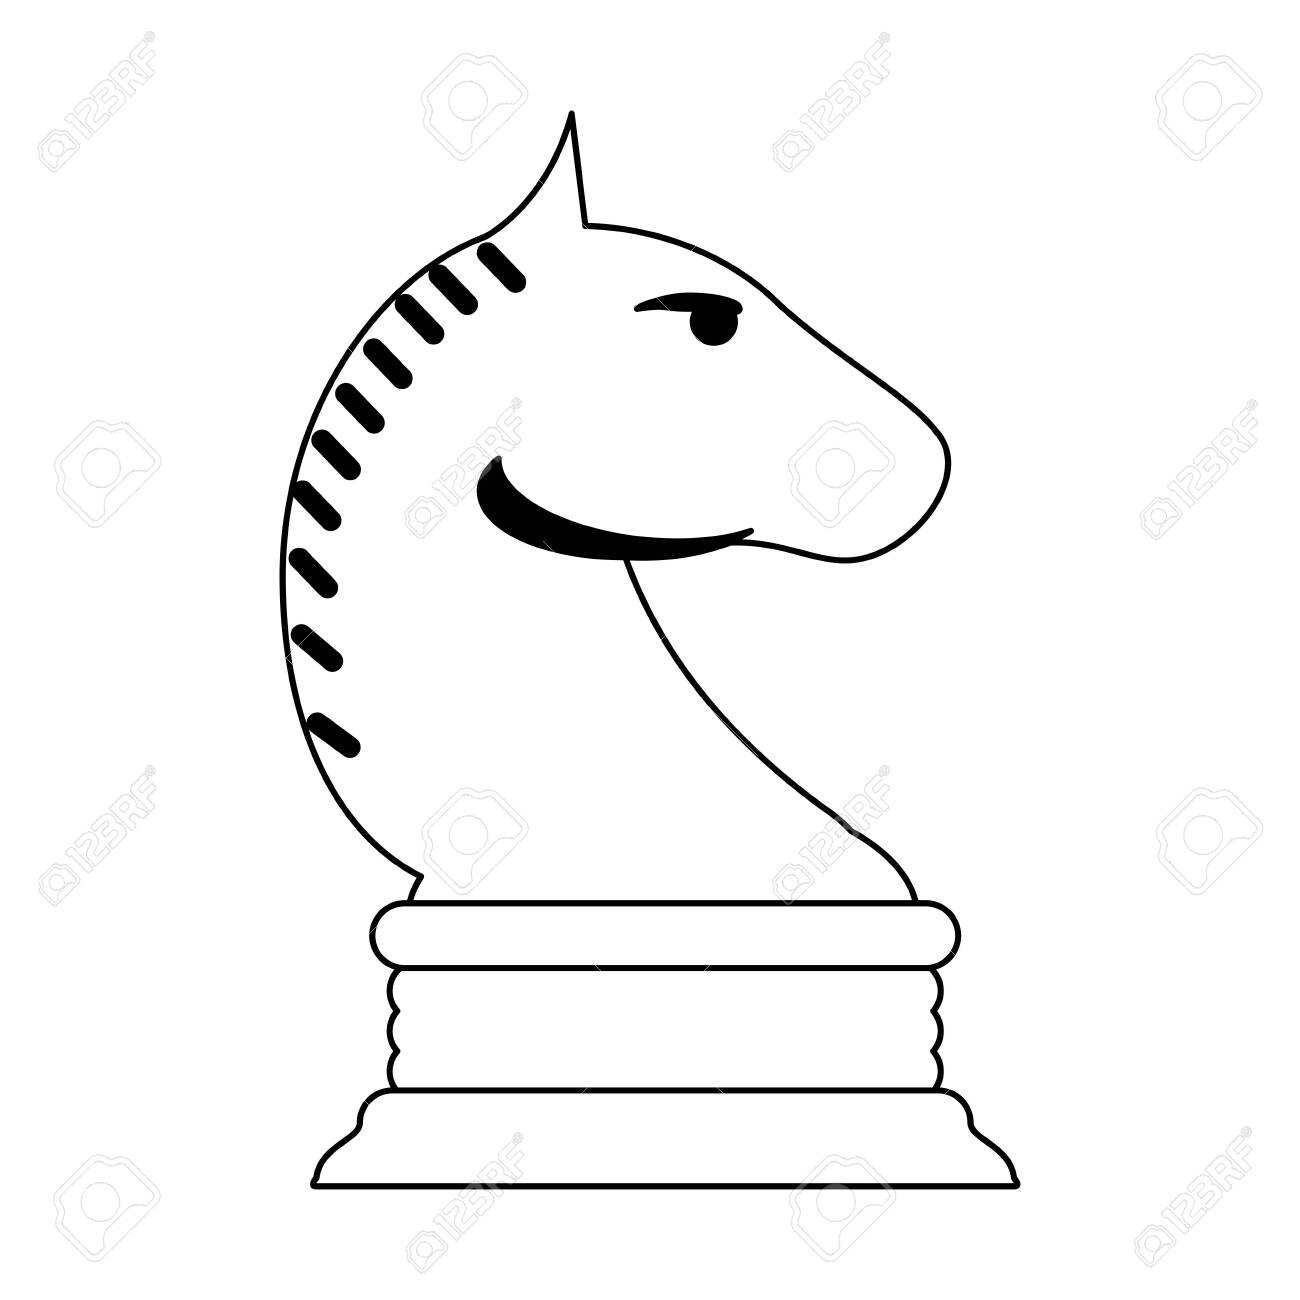 Chess Horse Game Symbol Vector Illustration Graphic Design Royalty Free Cliparts Vectors And Stock Illustration Image 116690802